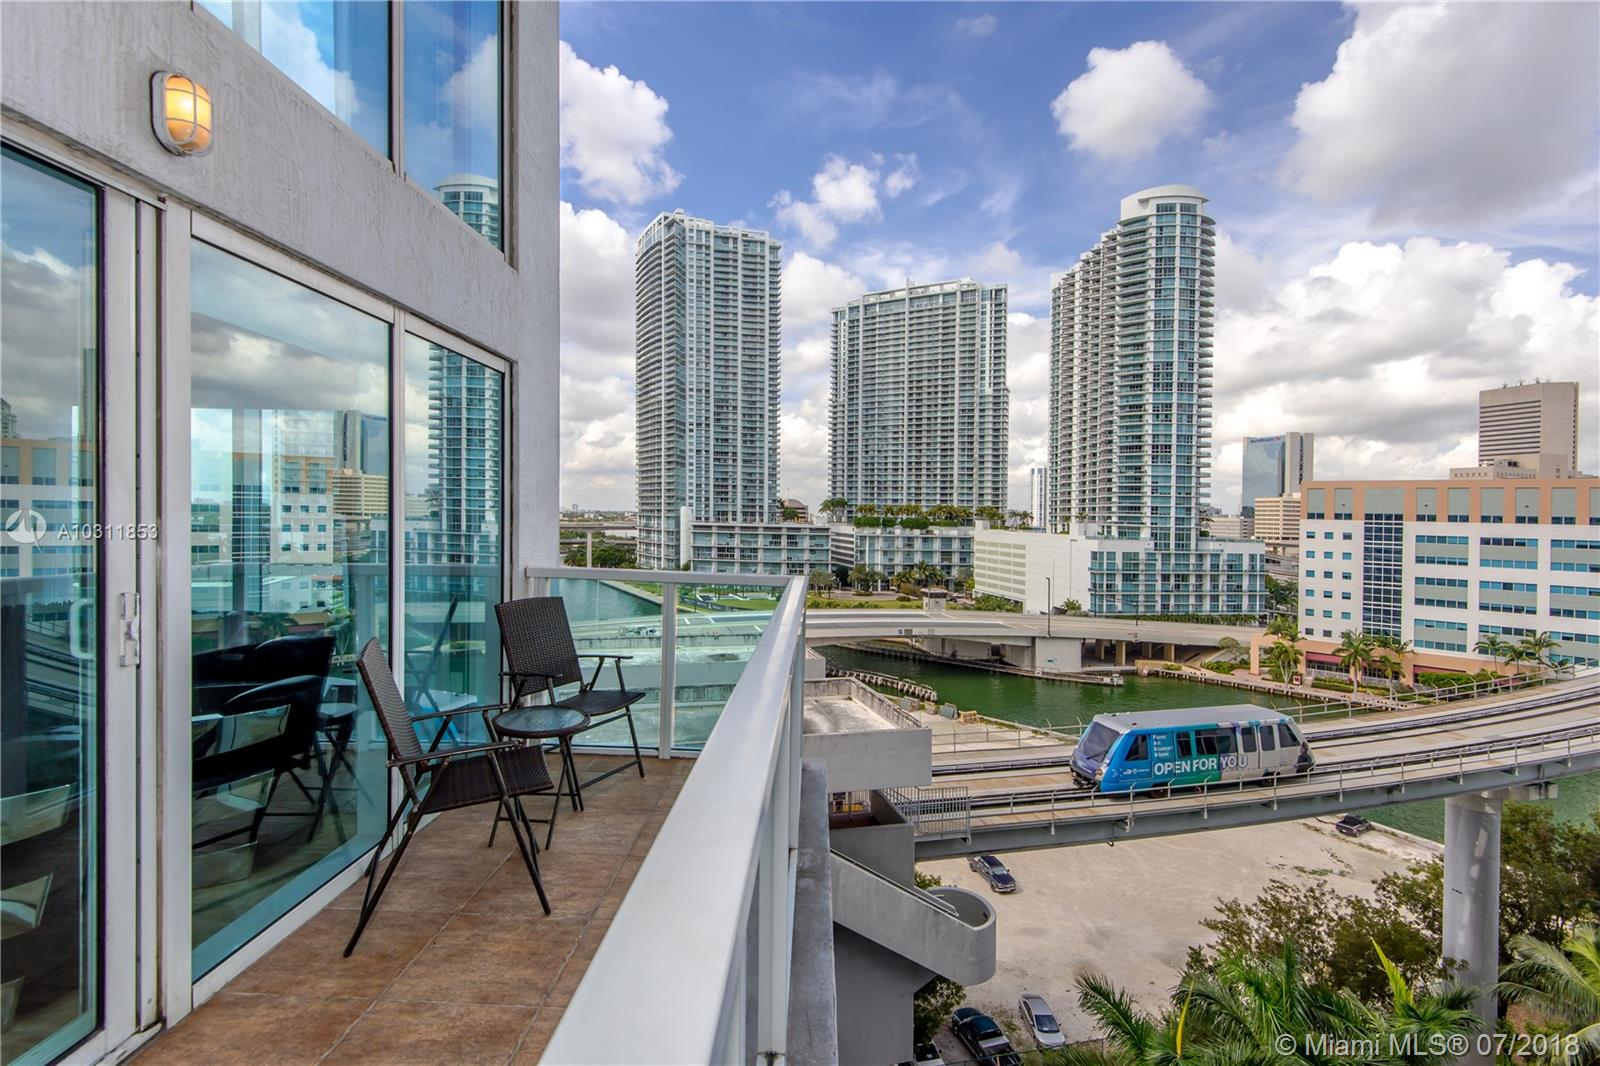 41 SE 5th Street, Miami, FL 33131-2504, Brickell on the River South #717, Brickell, Miami A10311853 image #24